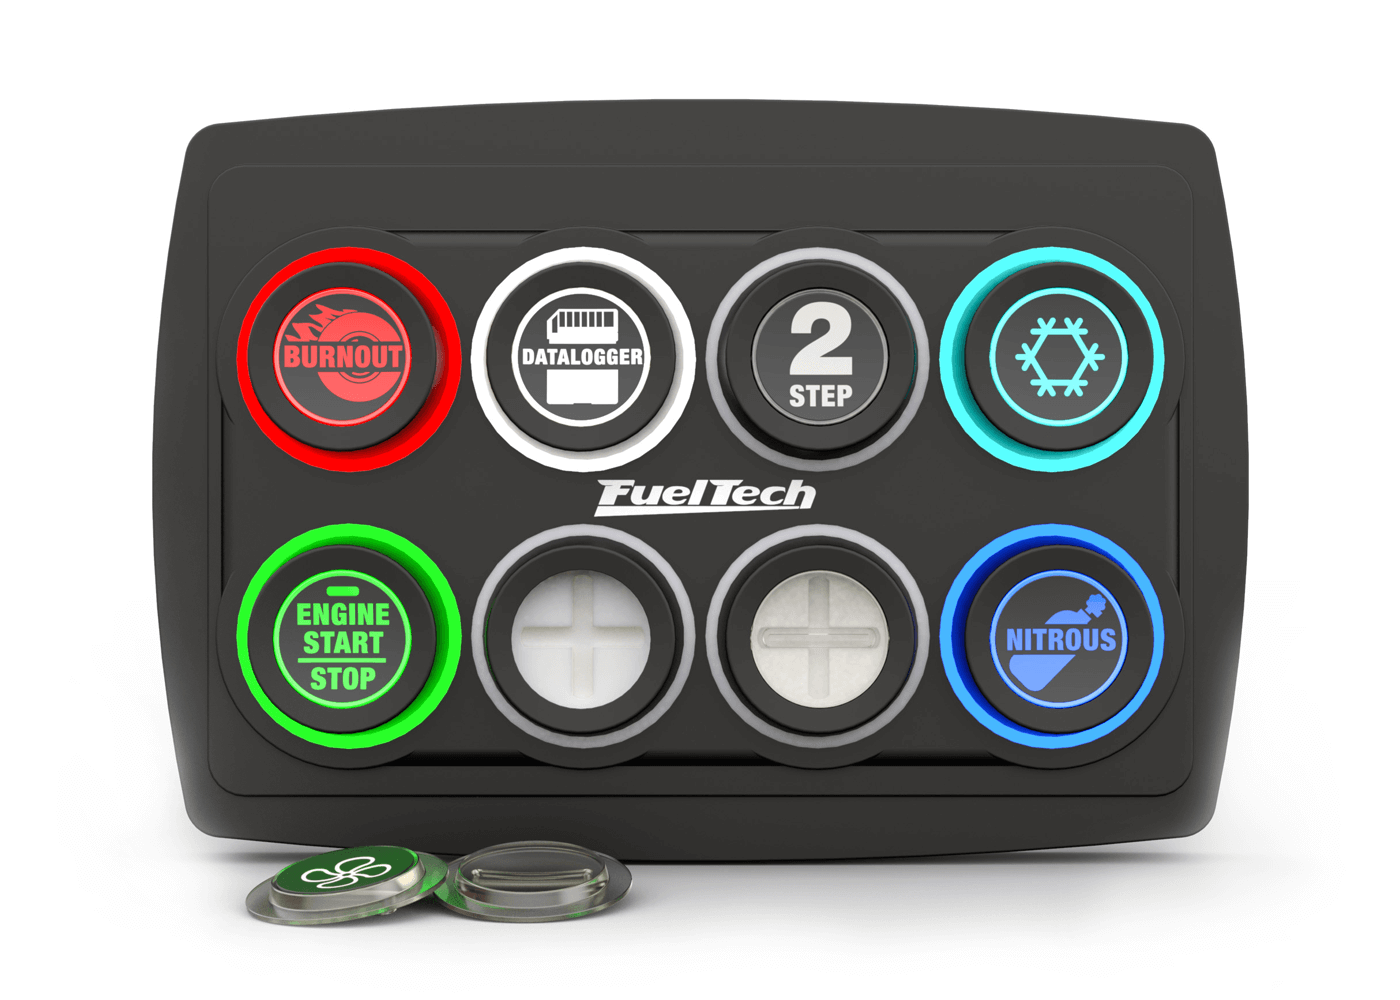 FT SwitchPanel-8 de Fueltech – Botones Programables